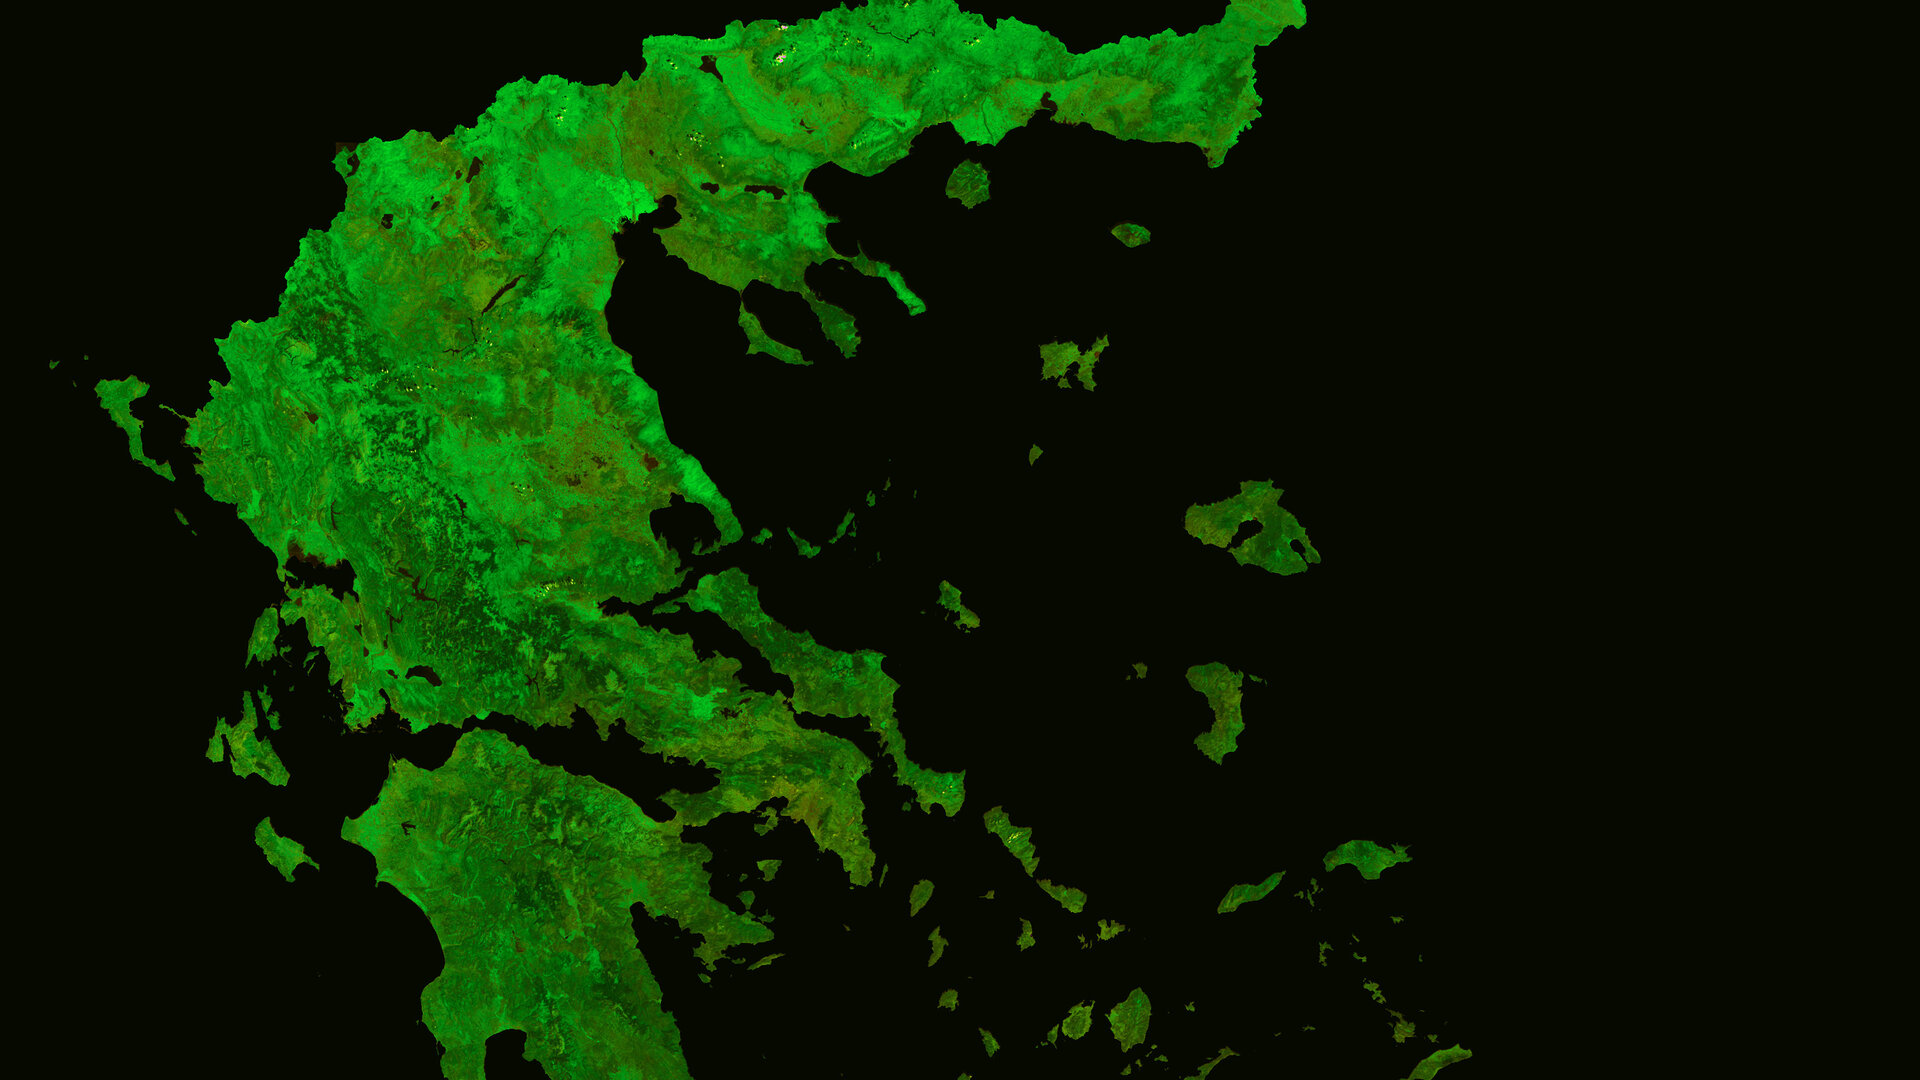 A cloud-free image of Greece, acquired by ESA's Proba-V satellite